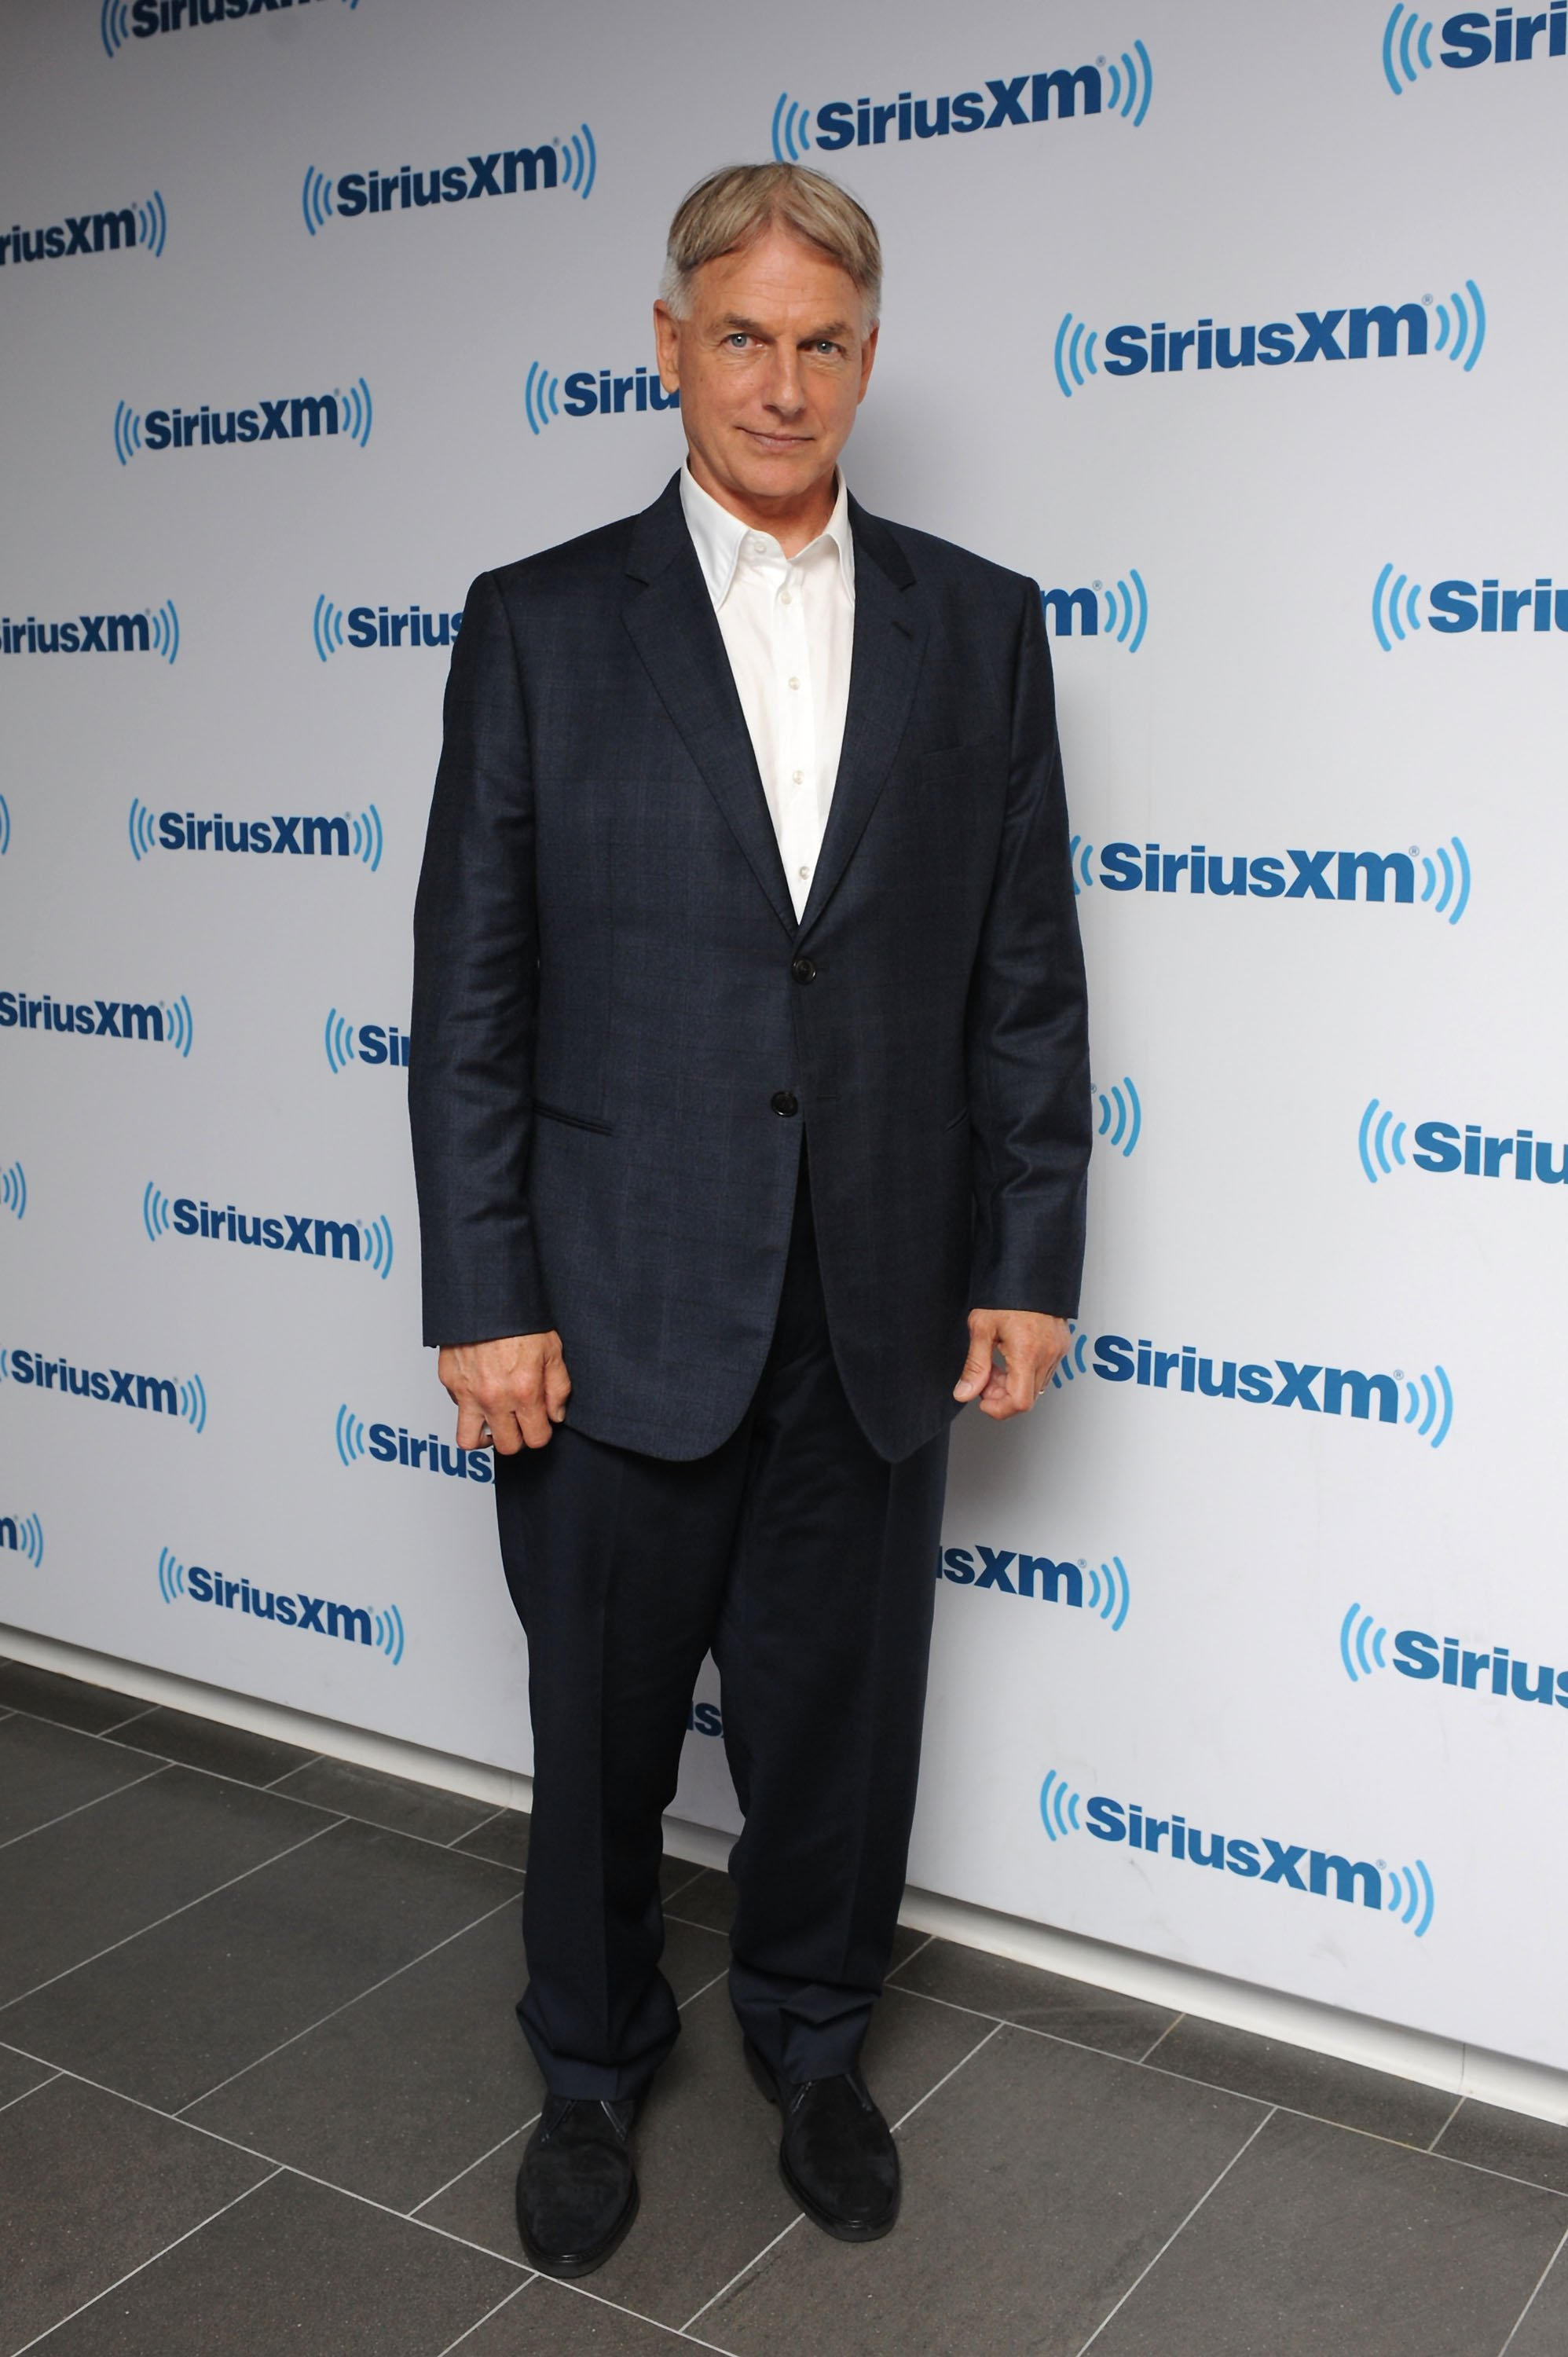 Mark Harmon at SiriusXM Studios on September 22, 2014 in New York City. | Photo: Getty Images